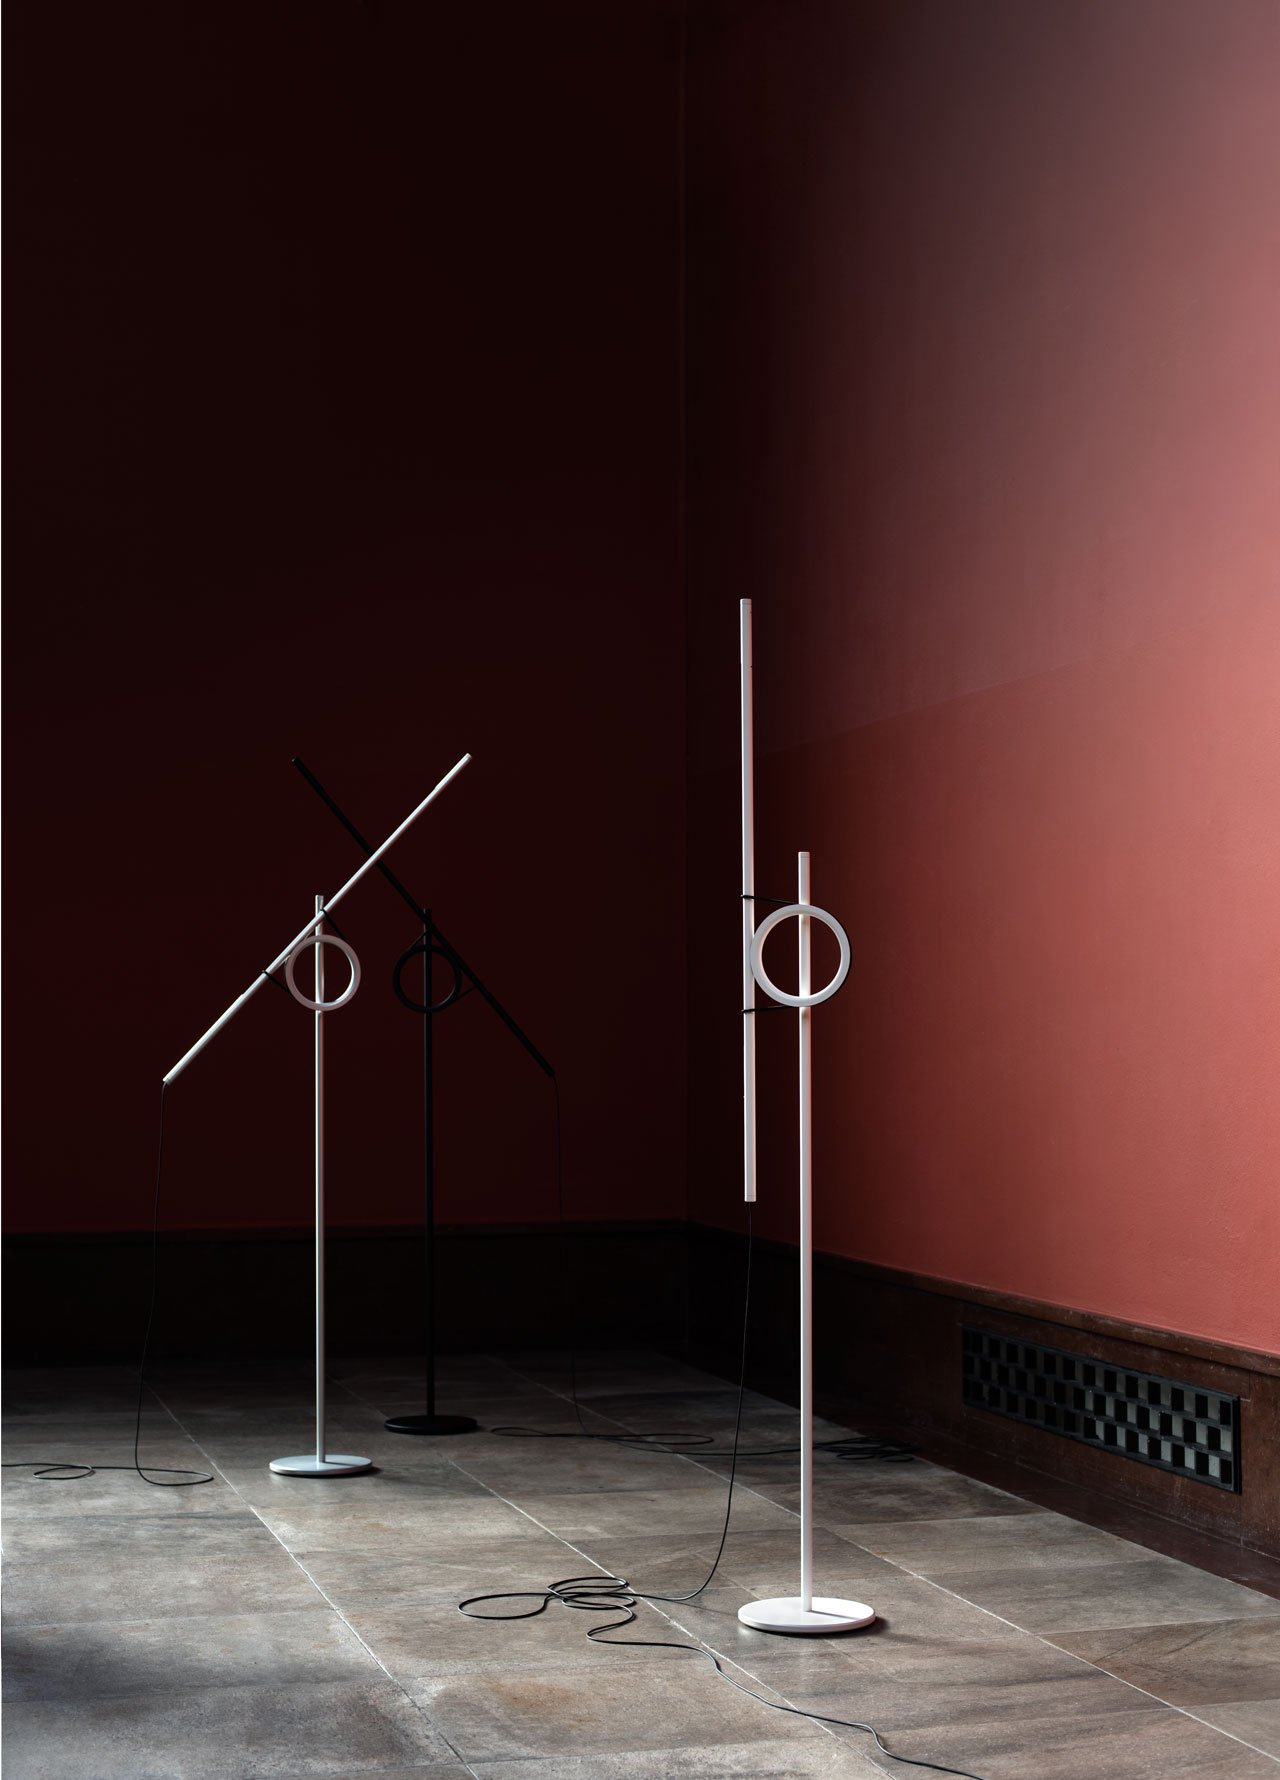 Tangent floor lamp (prototype) by Jenkins&Uhnger (Thomas Jenkins (UK) and Sverre Uhnger (NO)) for Everything is Connected exhibition at Ventura Lambrate during Milan Design Week 2017. Photo: Lasse Fløde | Styling: Kråkvik & D`Orazio | Thanks to Vigeland-Museet.